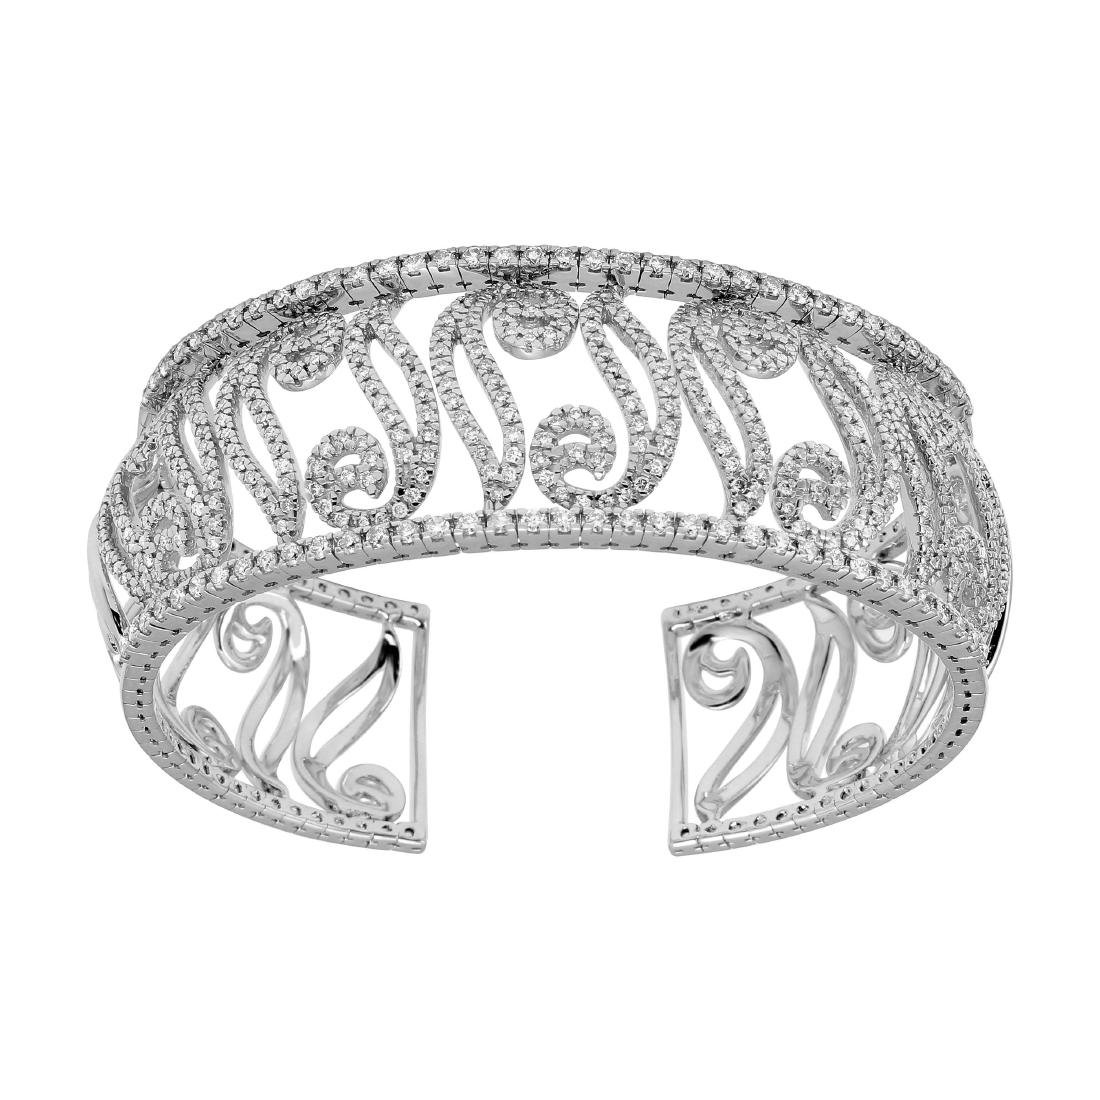 14KT White Gold Diamond Cuff Bracelet